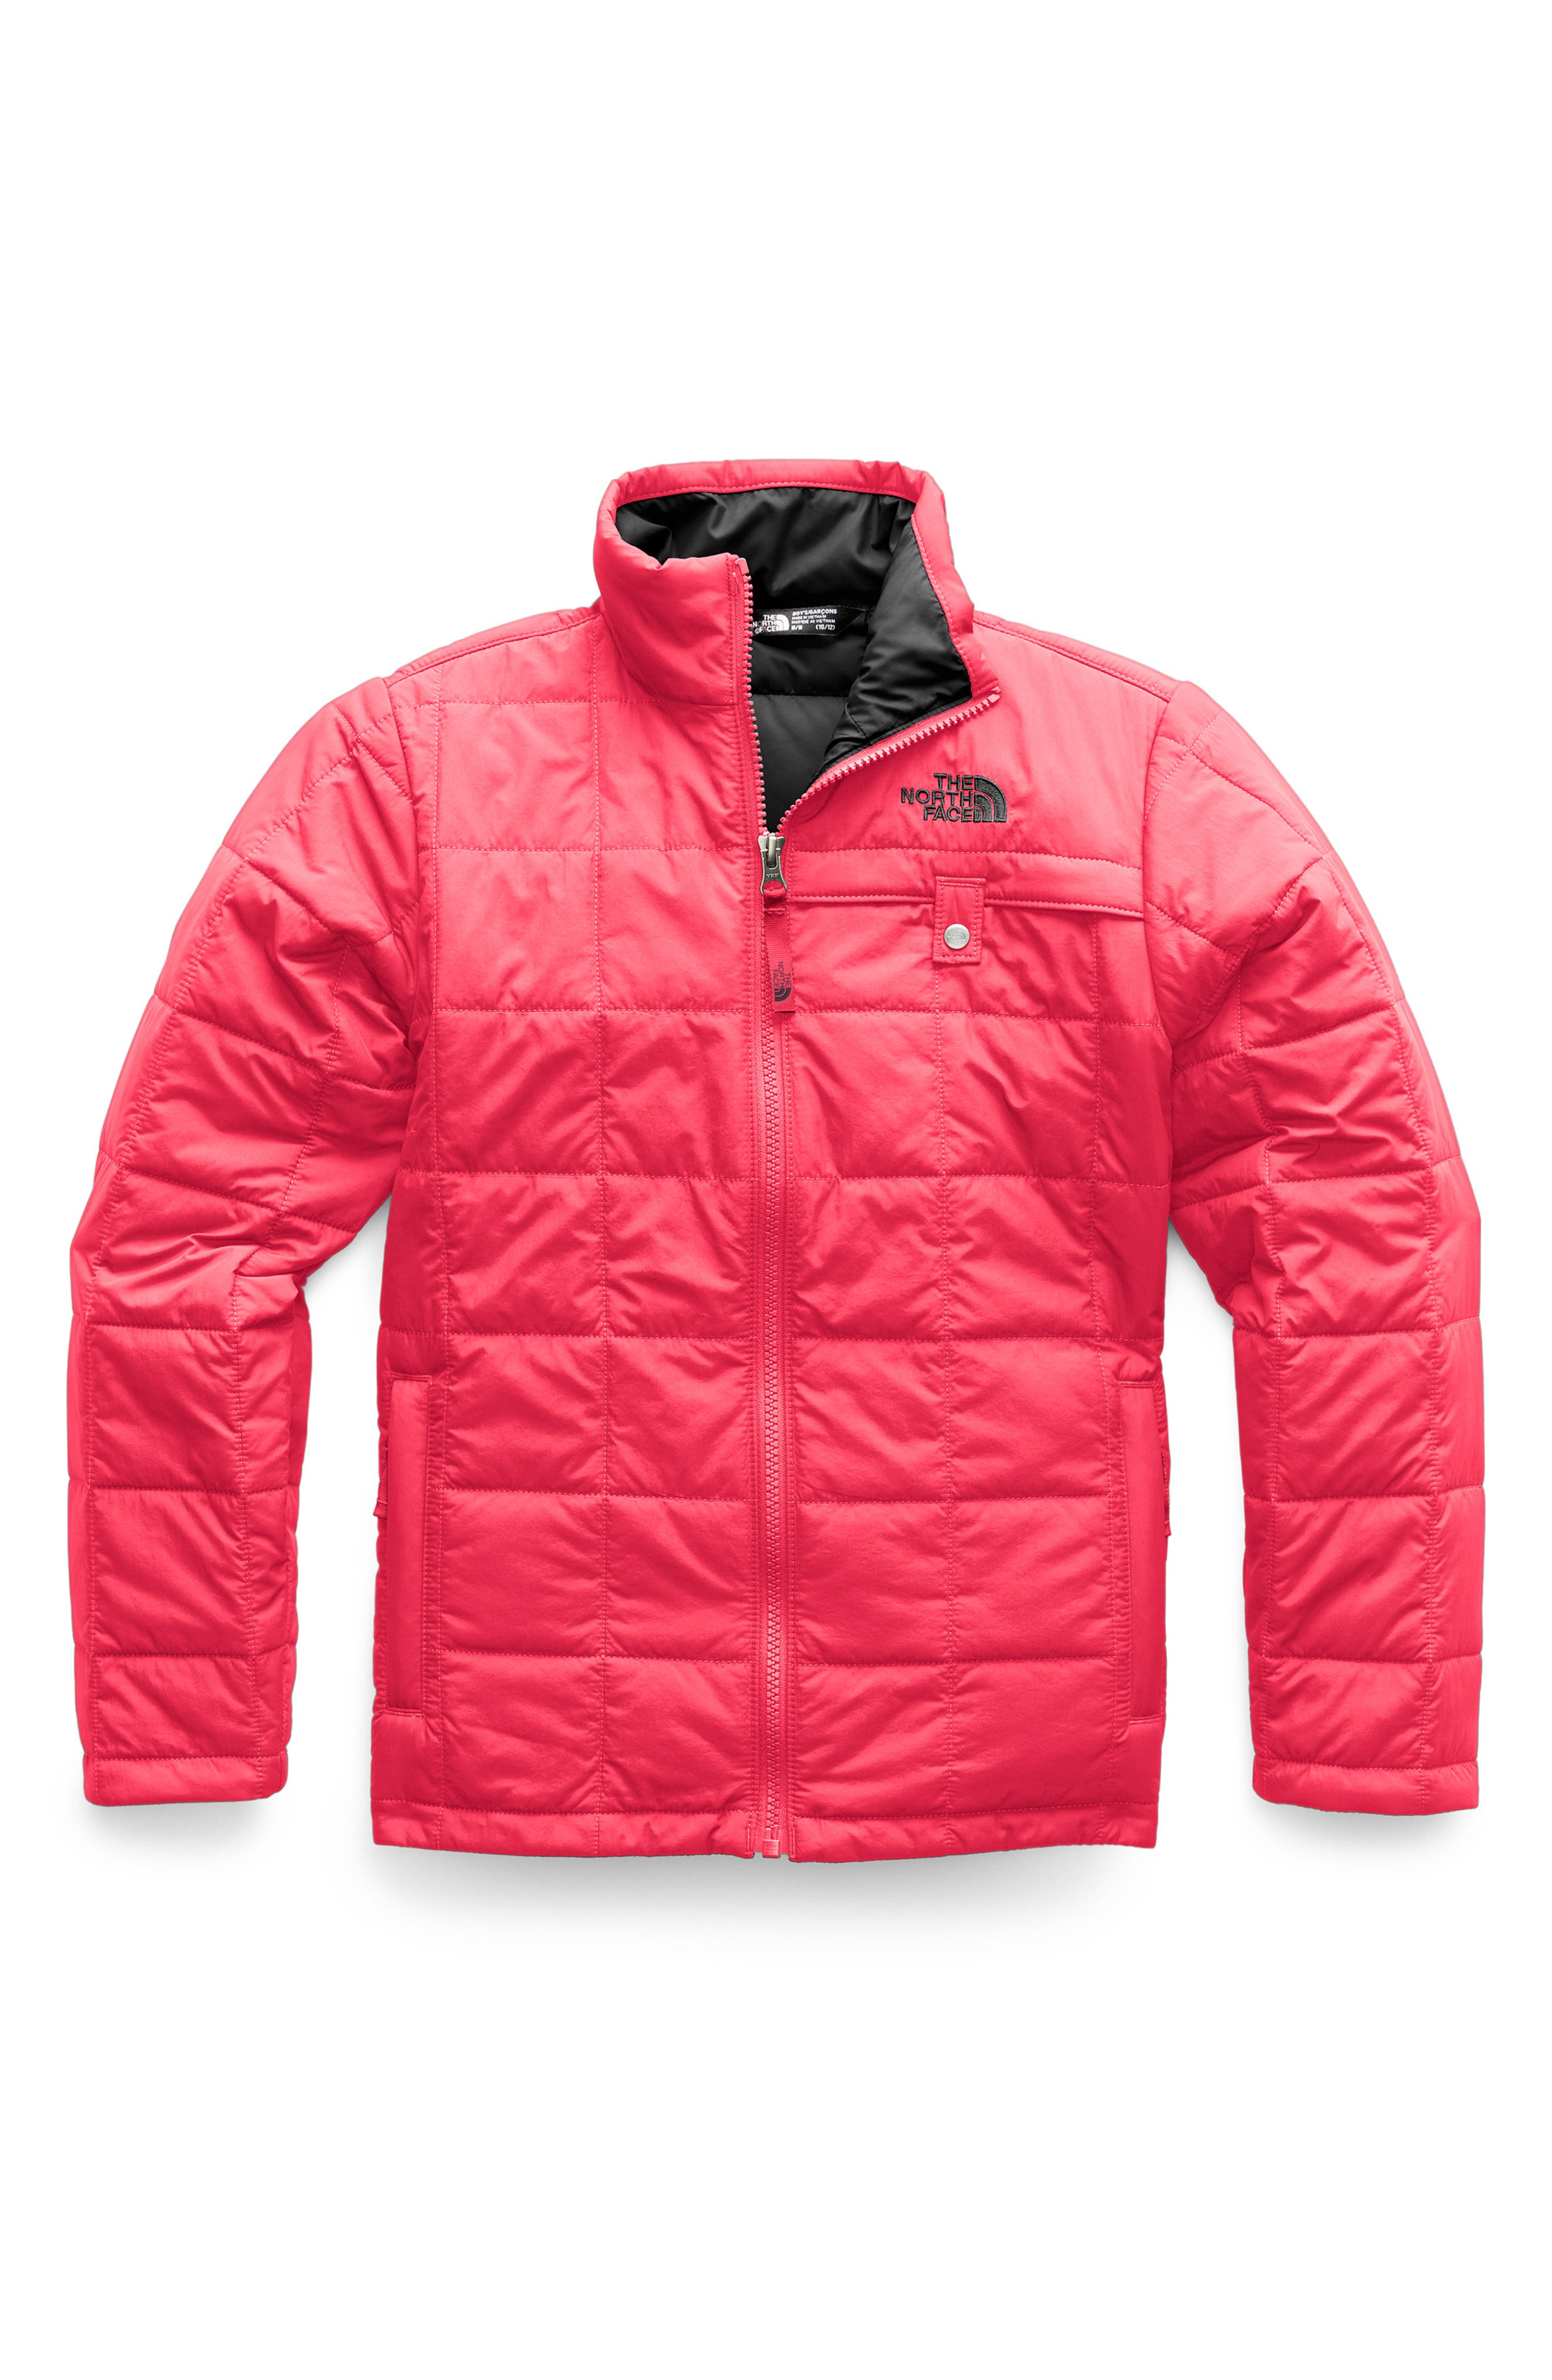 THE NORTH FACE,                             Harway Heatseeker<sup>™</sup> Water Resistant Jacket,                             Main thumbnail 1, color,                             TNF RED